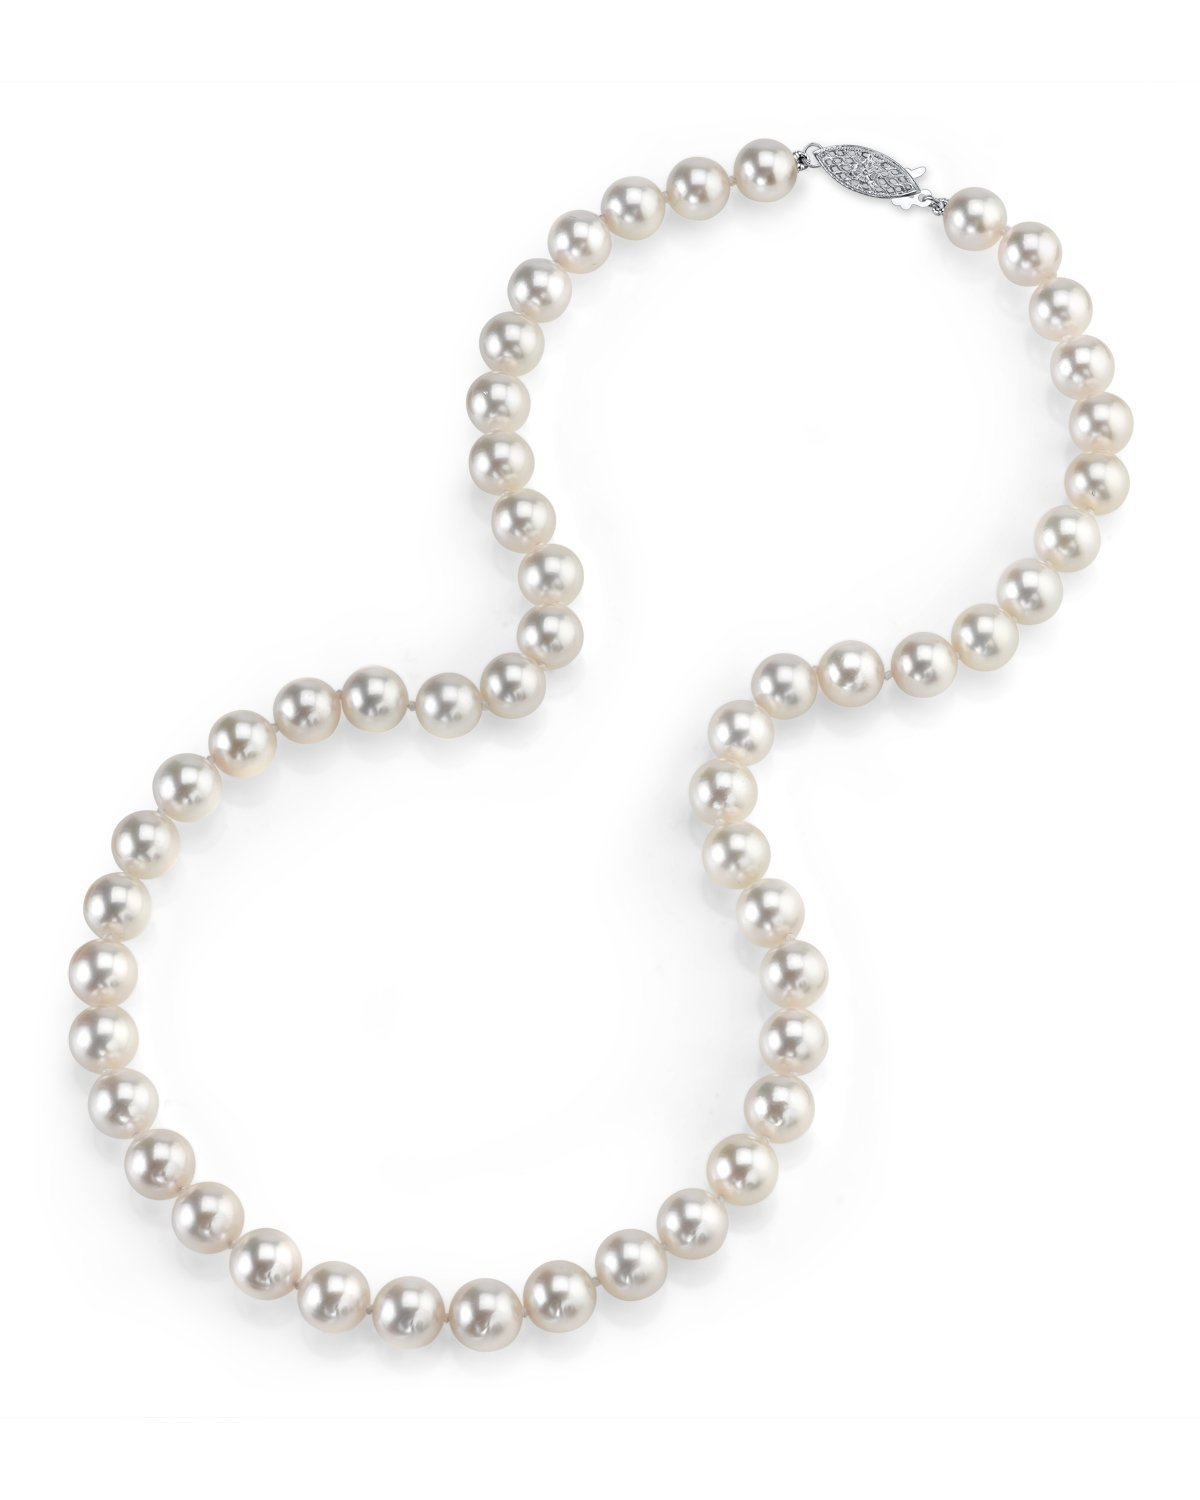 THE PEARL SOURCE 14K Gold 7.0-7.5mm Round Genuine White Japanese Akoya Saltwater Cultured Pearl Necklace in 17'' Princess Length for Women by The Pearl Source